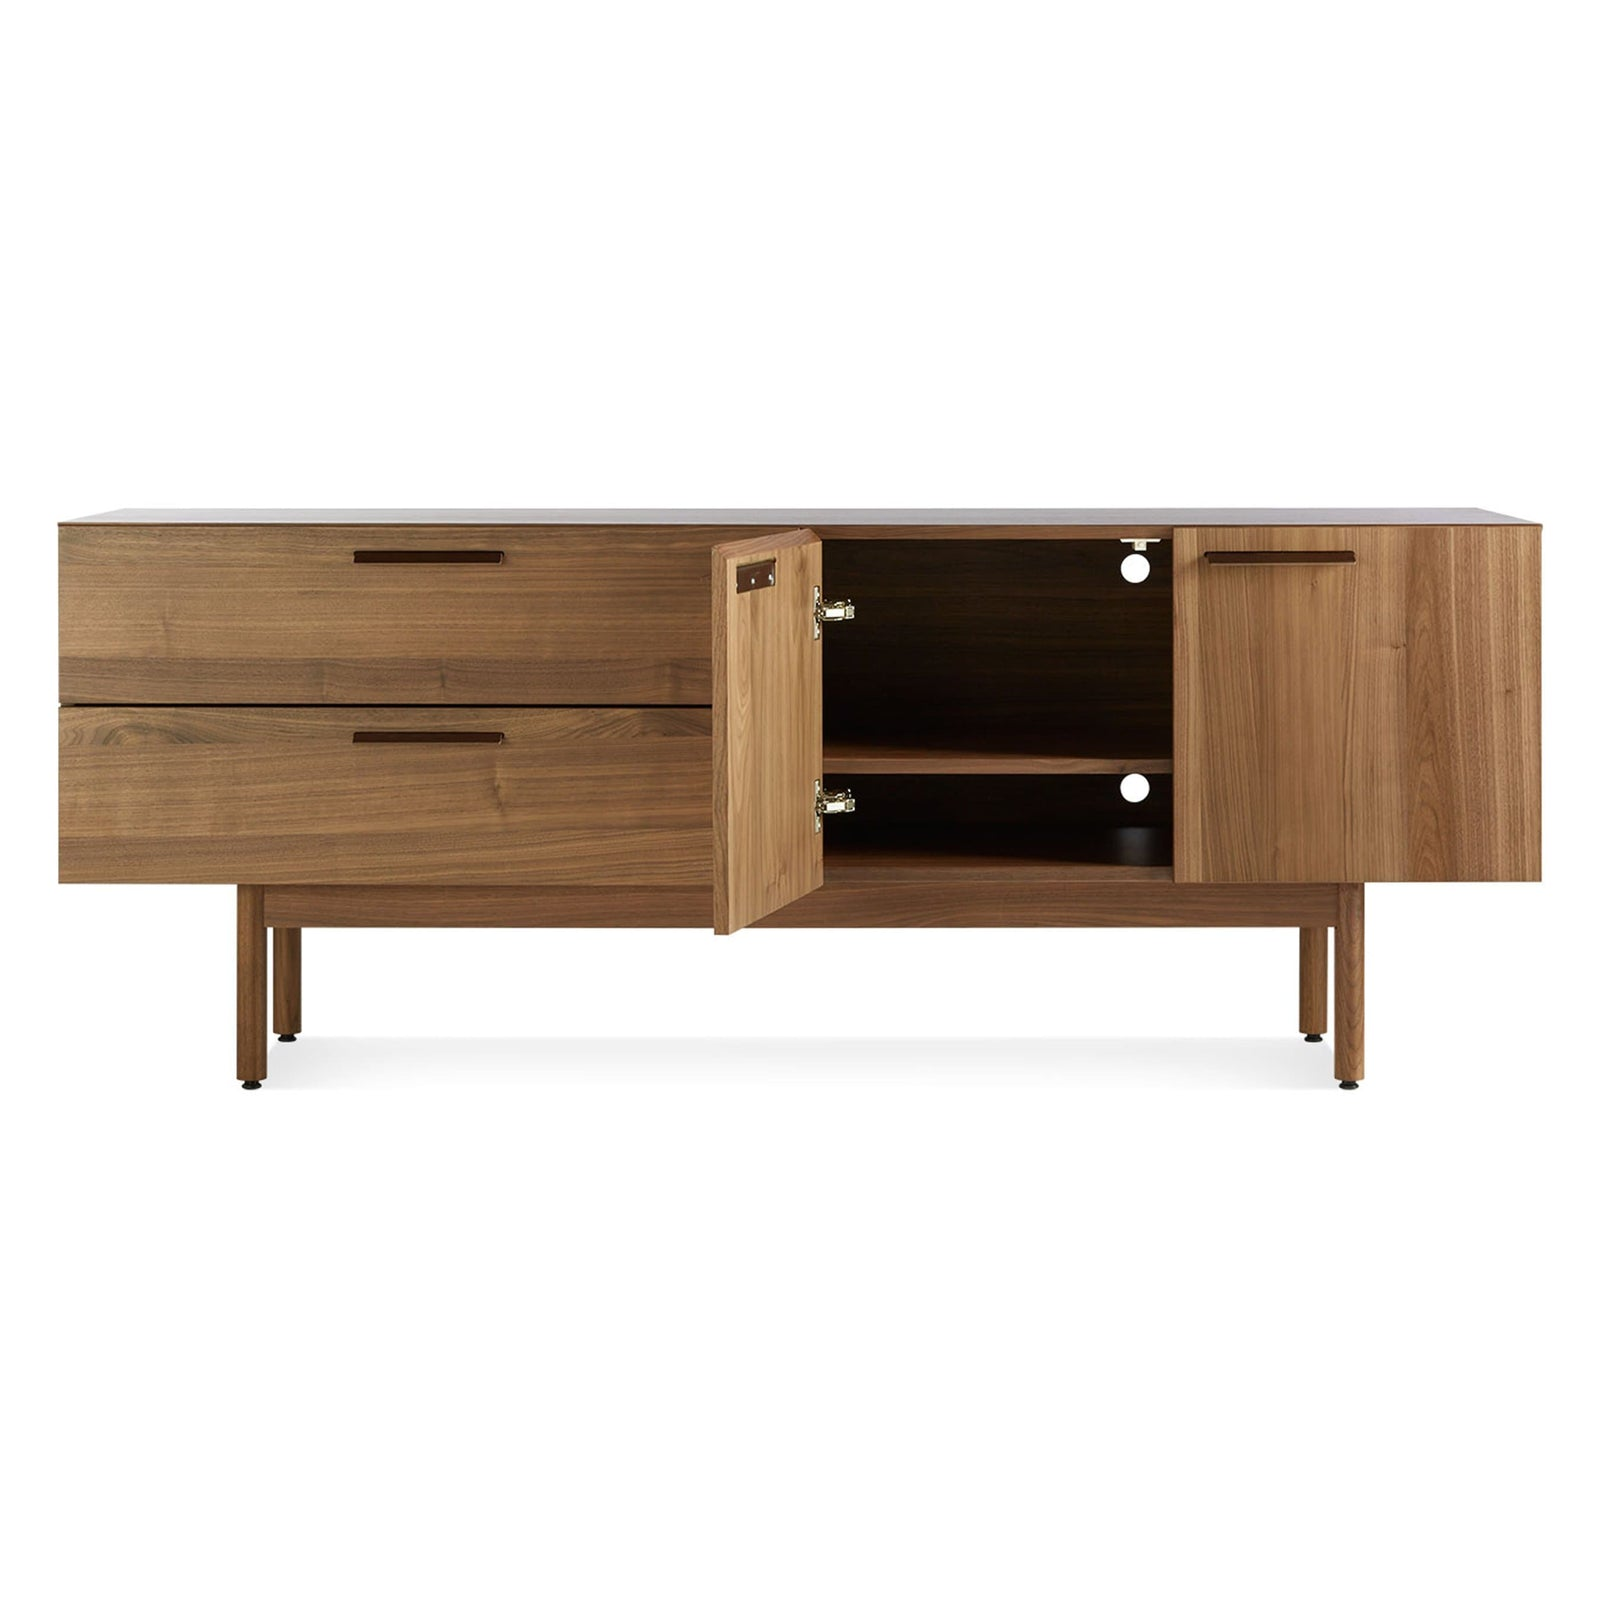 Blu Dot Furniture Shale Dresser